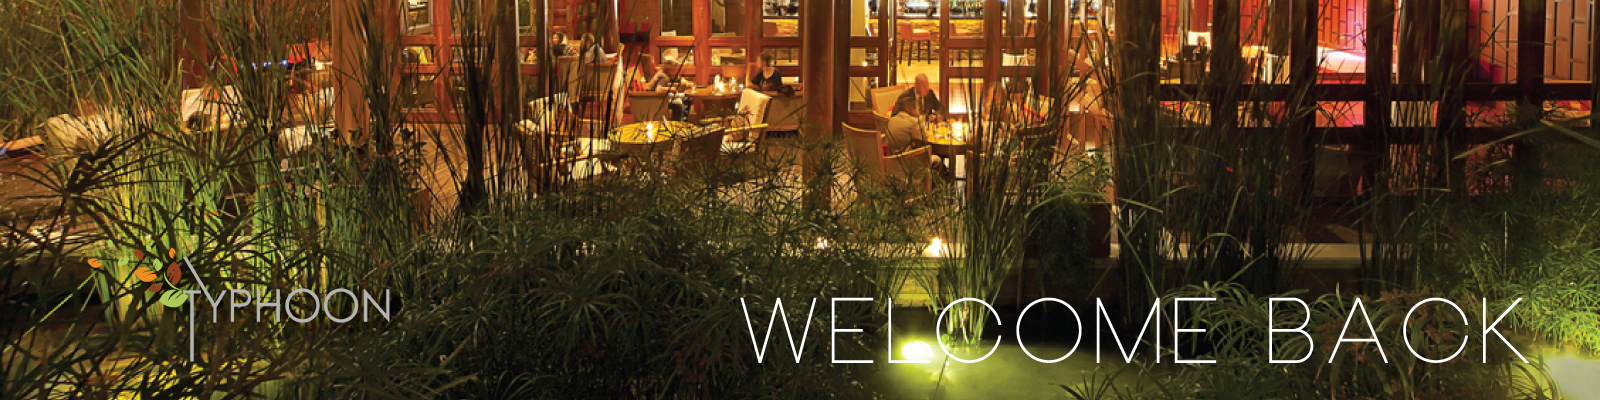 Welcome back! Enjoy a taste of Asia from China Garden and Royal Thai at Typhoon Garden. Best Happy Hour in Town Cocktails & Spirits start at BD 2+++ / 5pm - 7pm